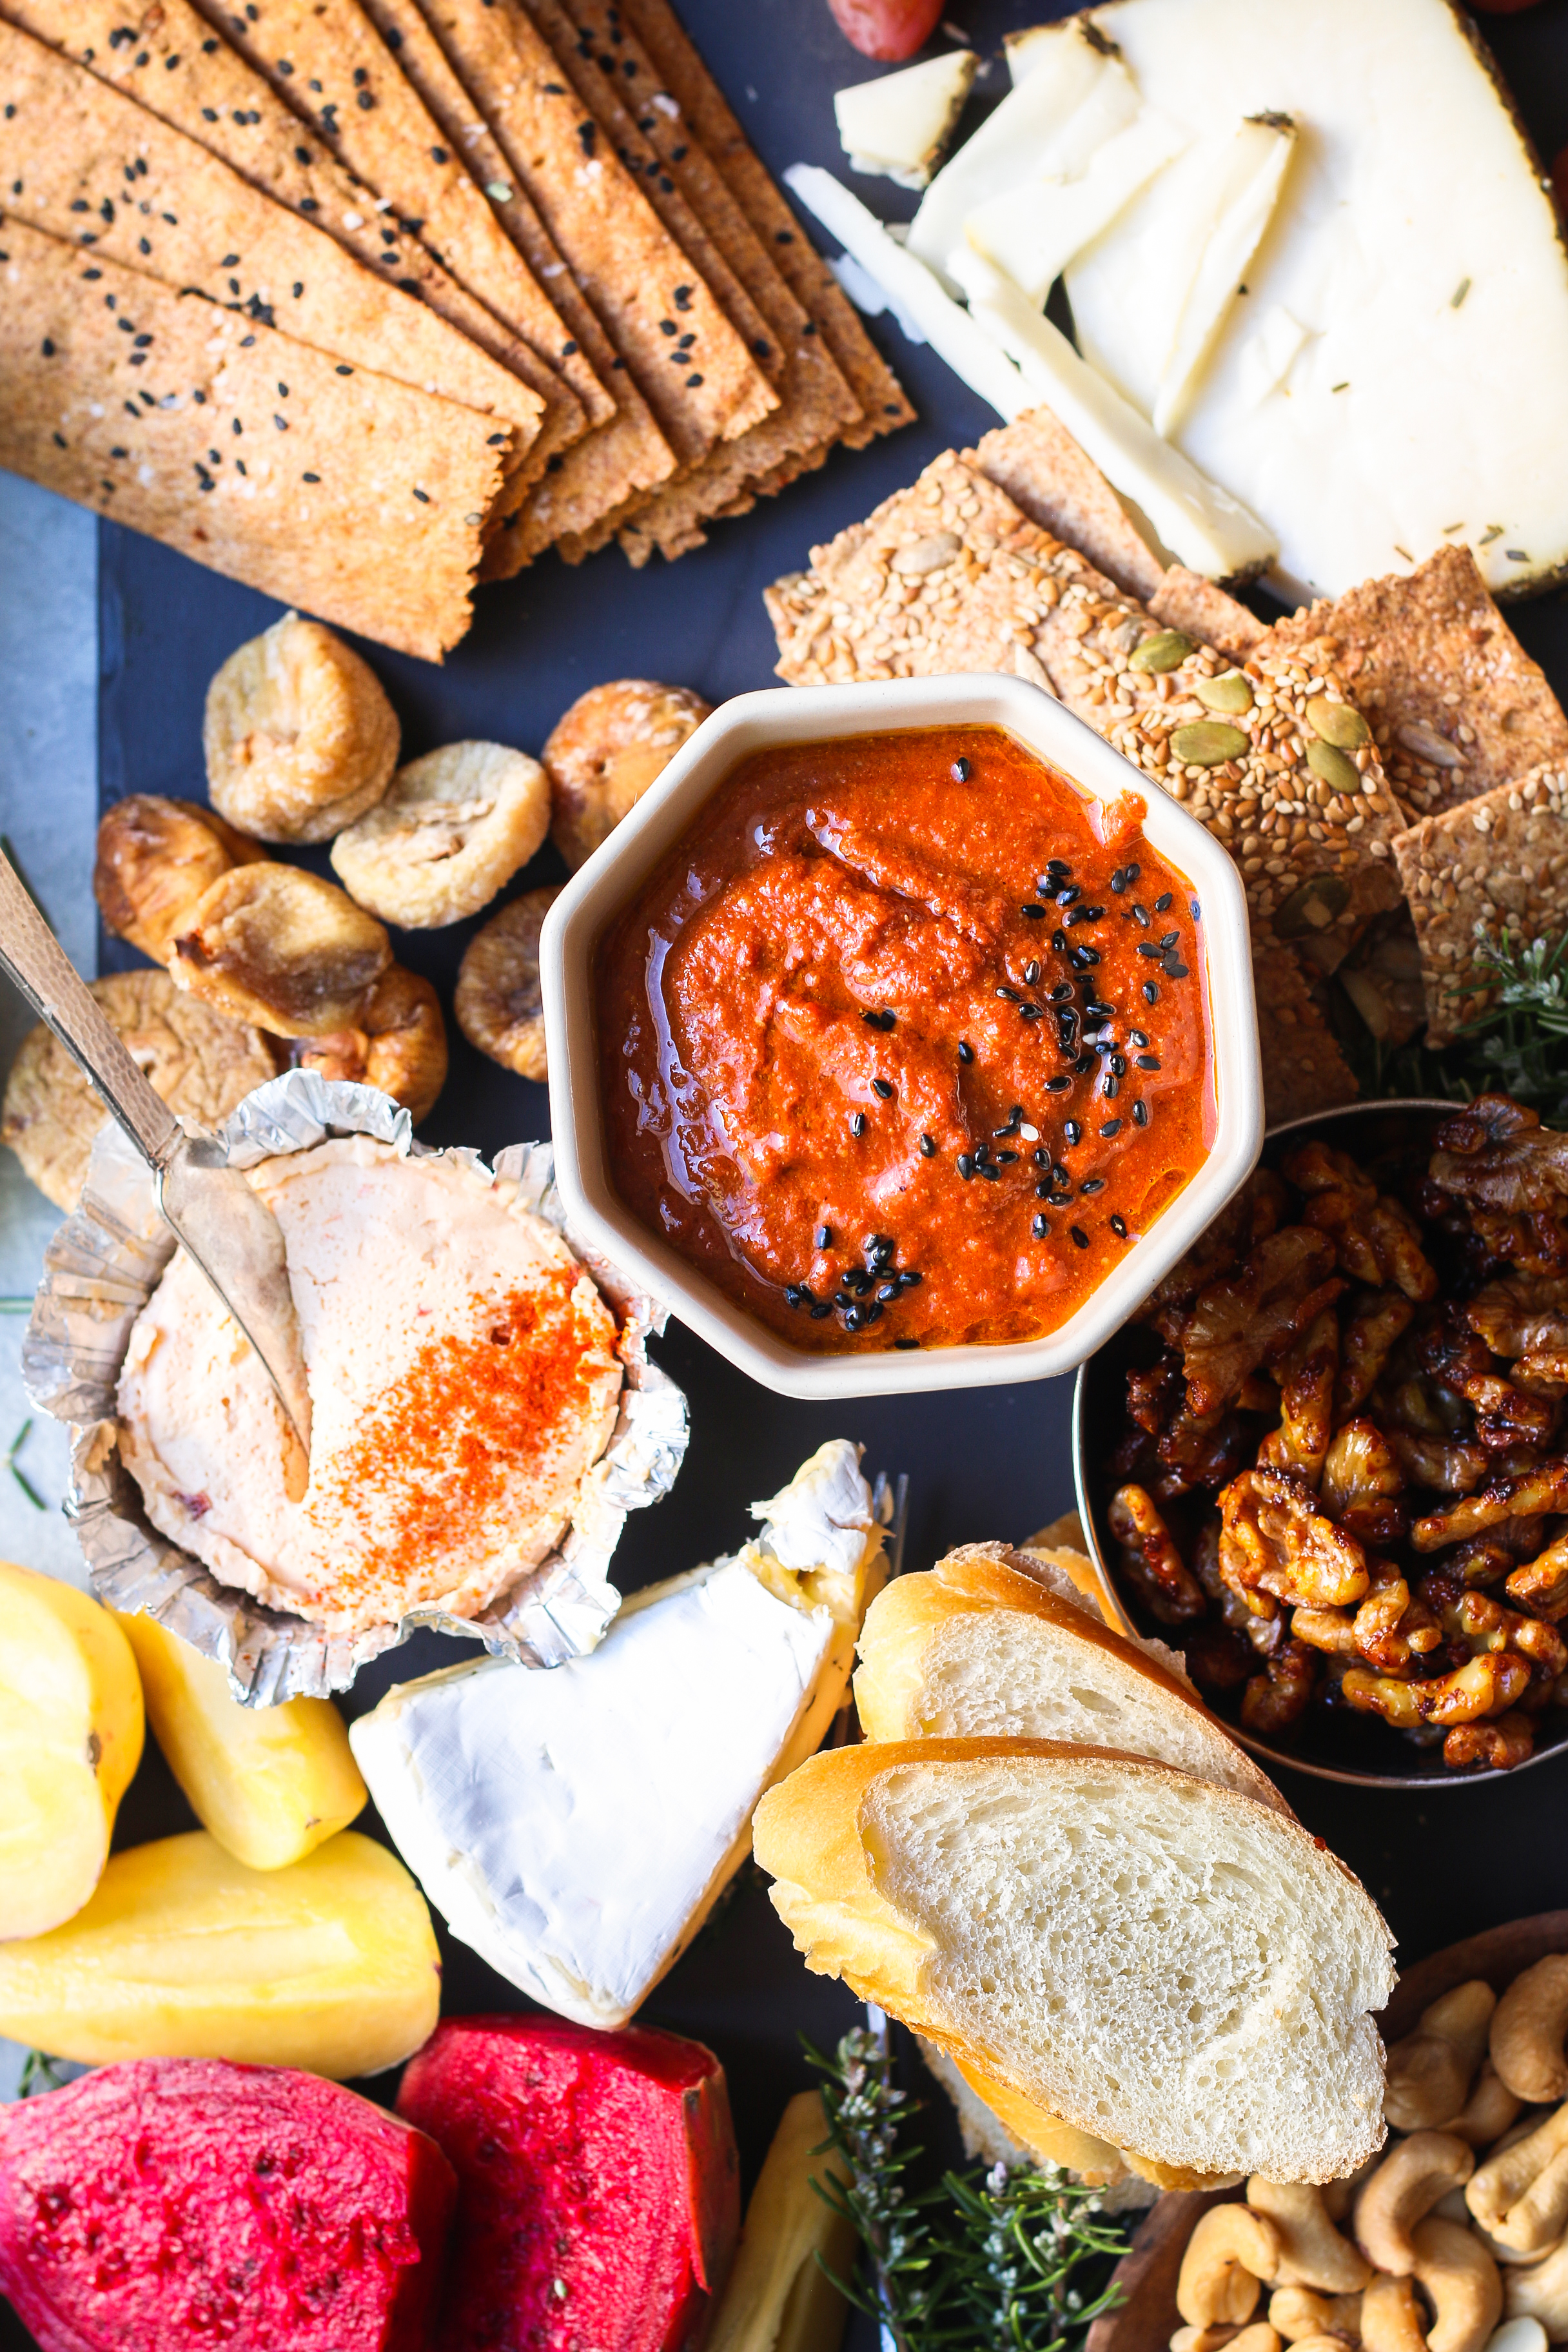 Perfect CHEESE BOARD - Roasted red bell pepper and Tomato Chutney |foodfashionparty| #cheeseboard #roastedtomatochutney